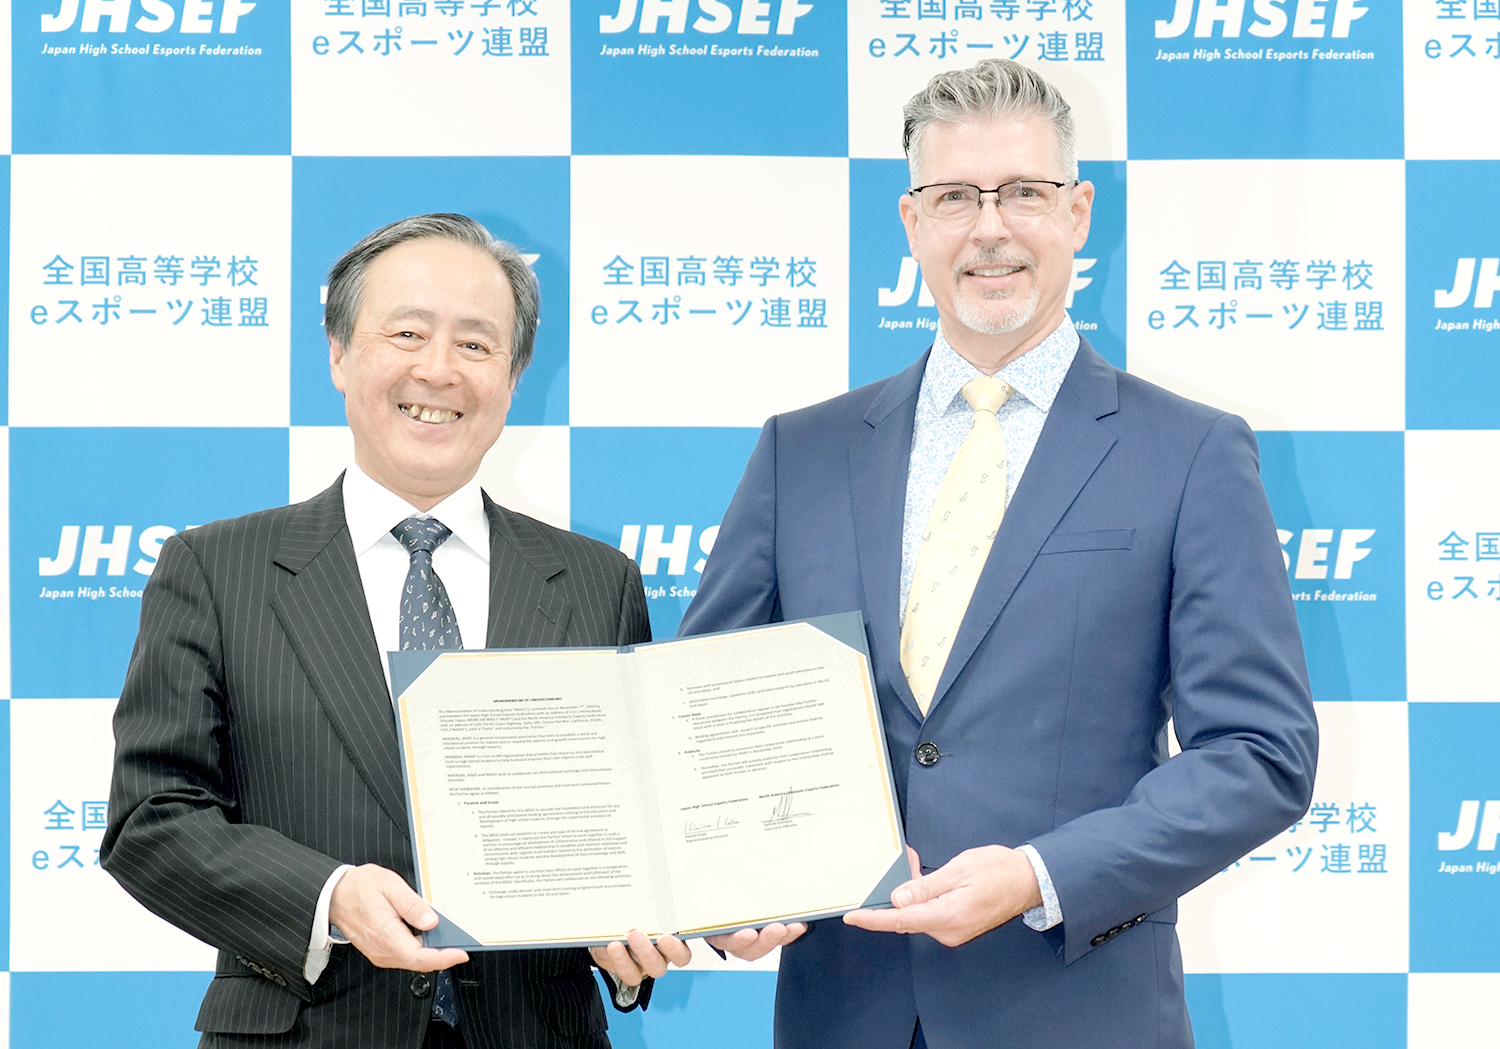 Kimito Kubo, President of JHSEF and Kevin Brown, NASEF Esports Program Specialist